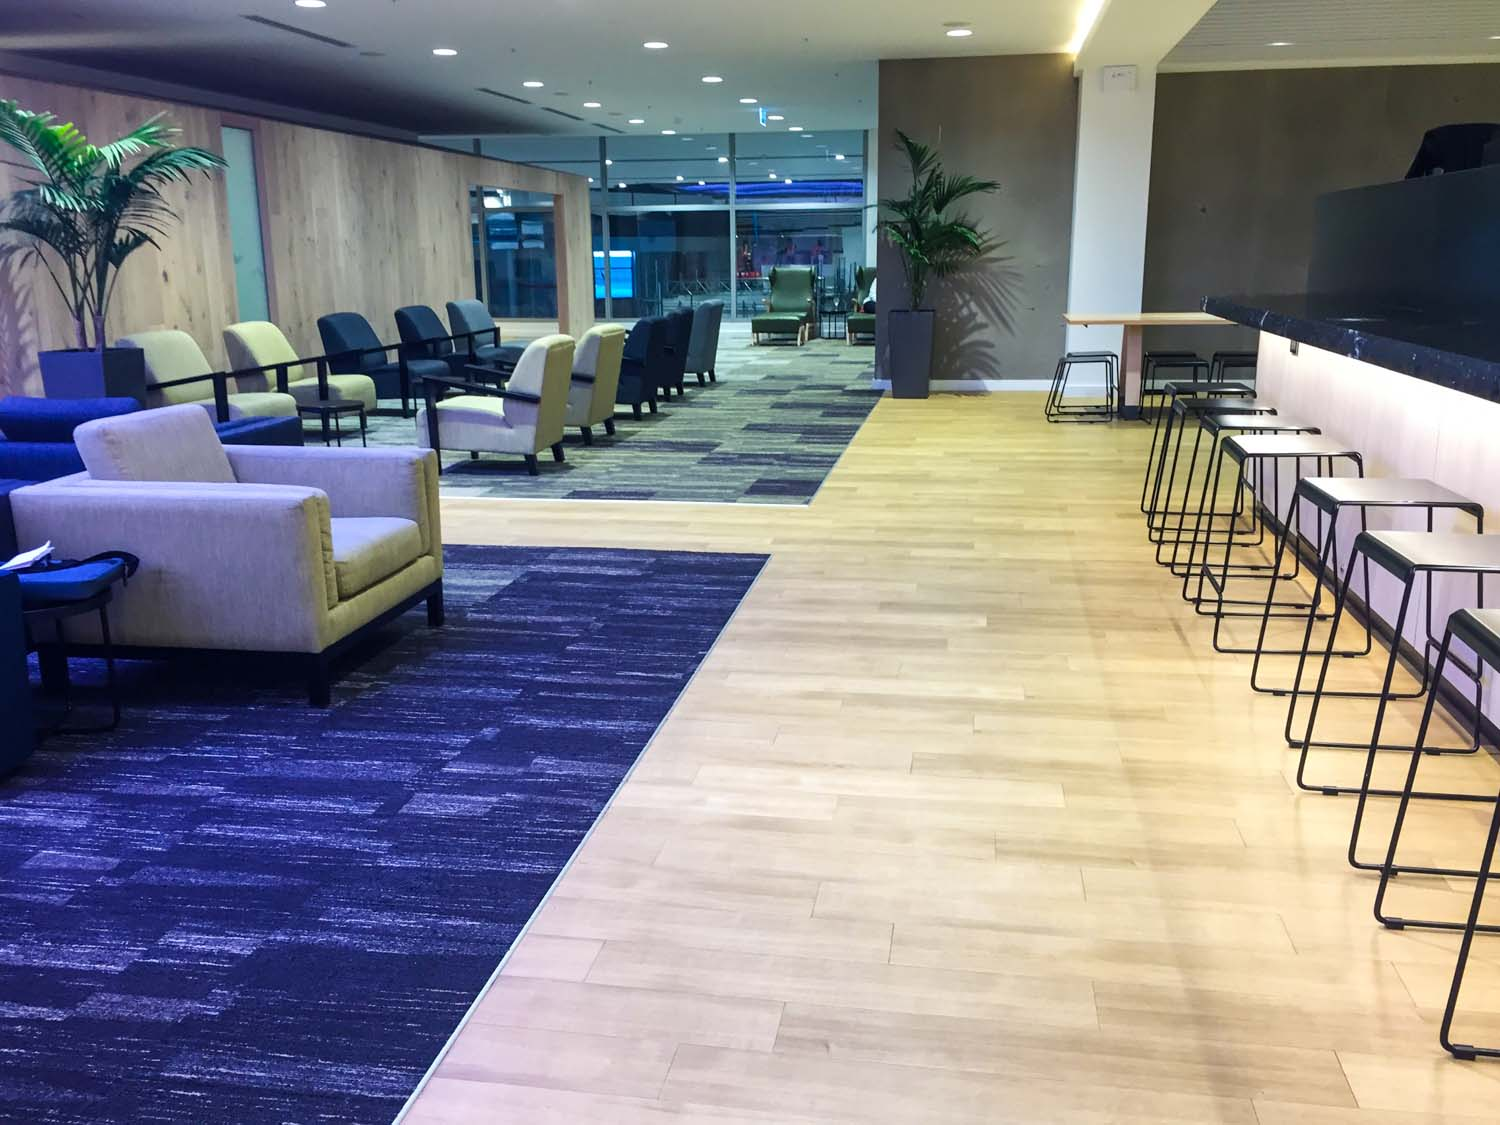 Strata Lounge auckland airport - openness